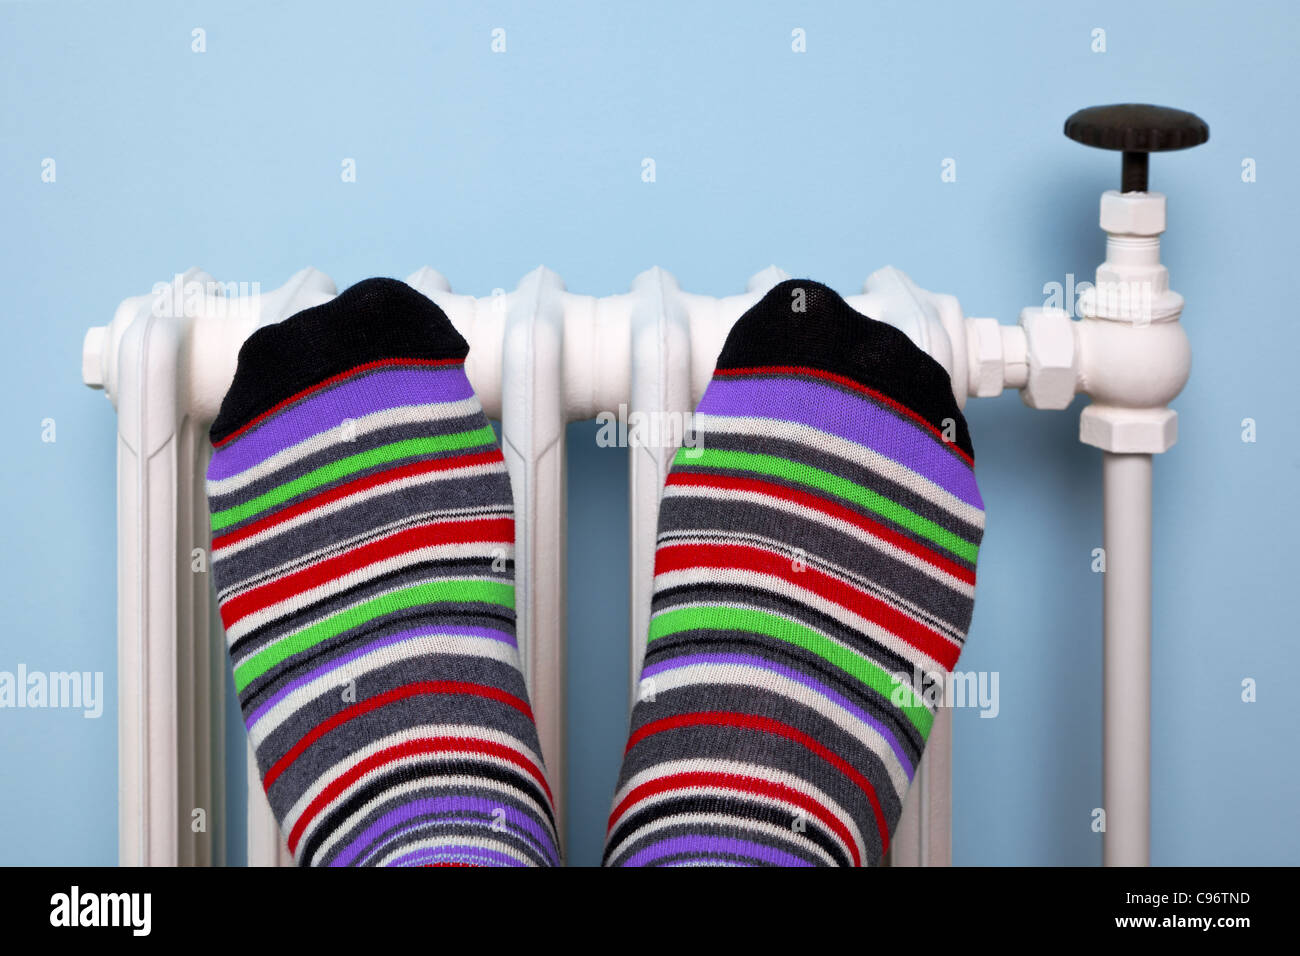 Photo of a persons feet in striped socks warming them against an old traditional cast iron radiator. - Stock Image